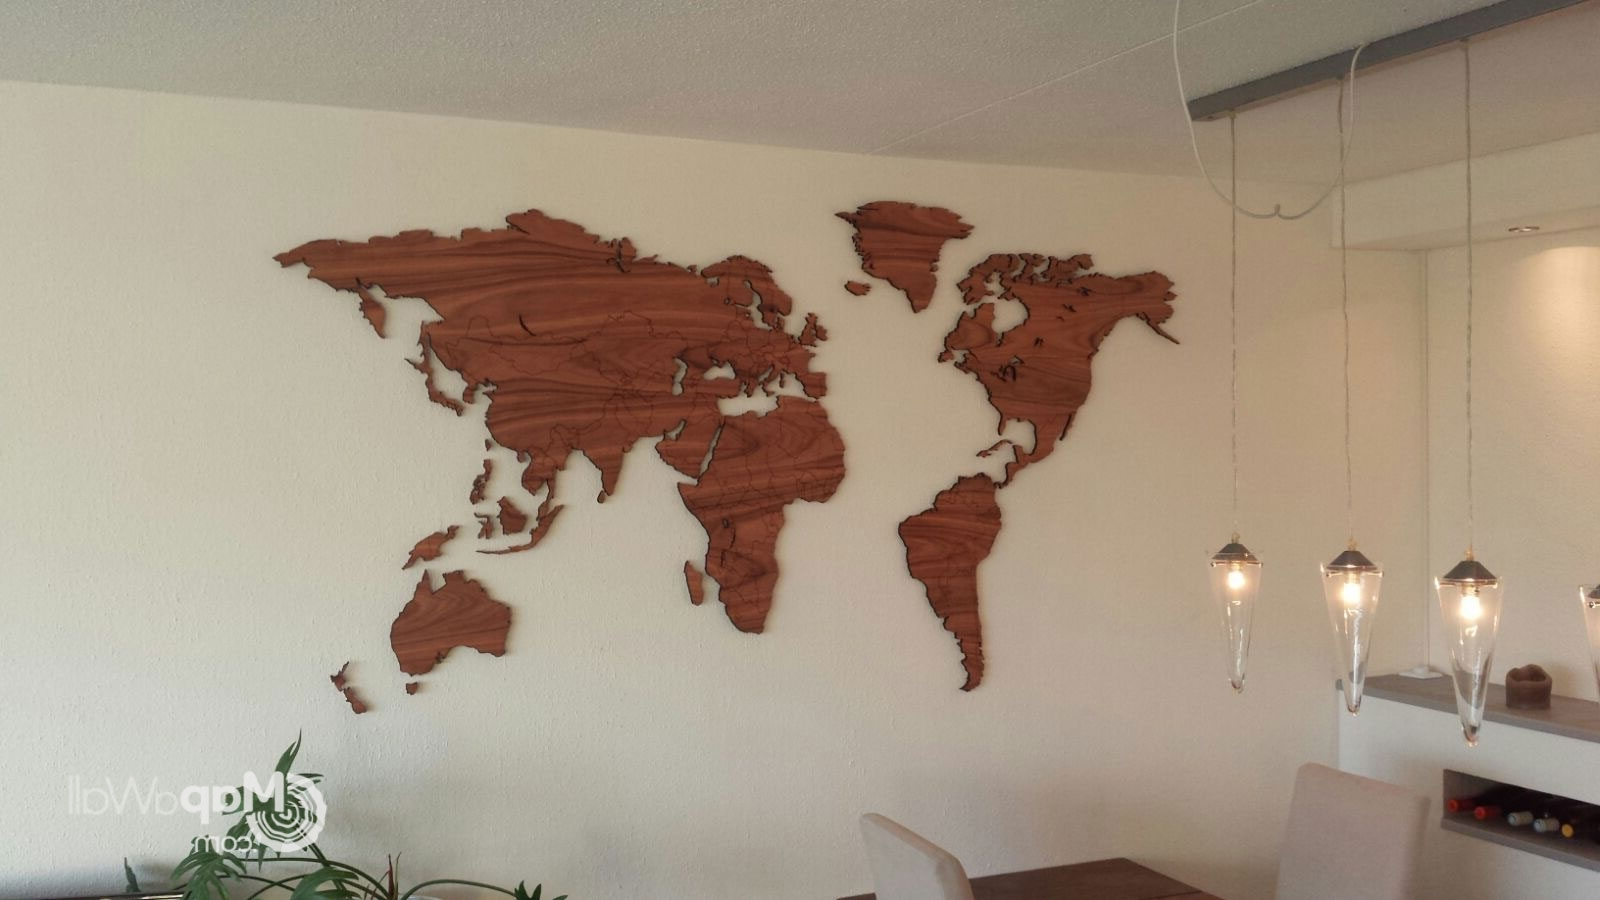 World Map Wood Wall Art Within Fashionable Wooden World Map Wall Art, Wooden World Map Wall Art (View 15 of 15)